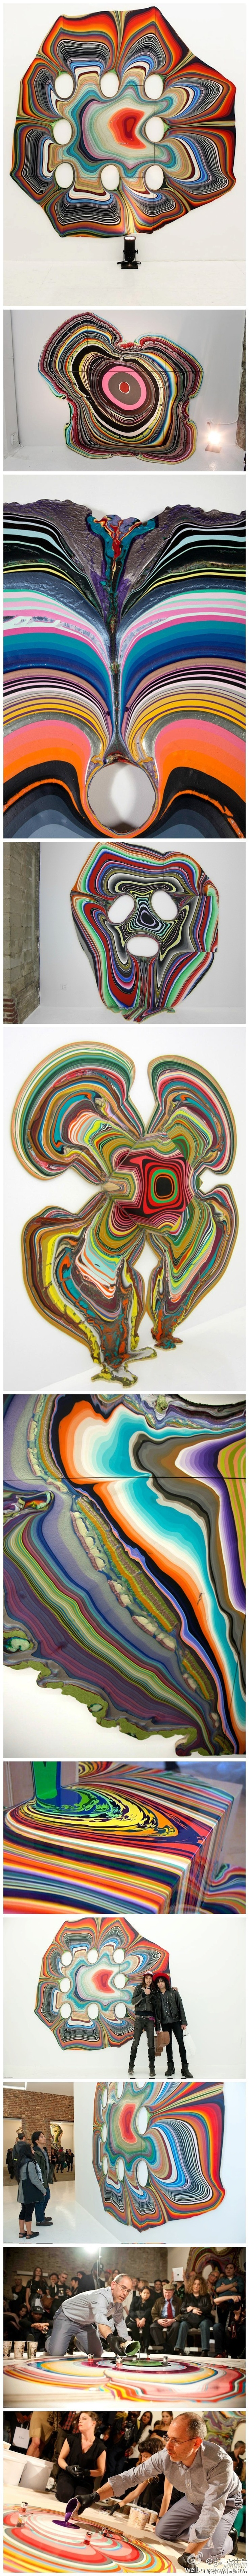 """Ambilight """"inverted"""" painting, the artist Holton Rower of the Kremlin in the same plane, the various colors of paint layer by layer, pouring up to become a colorful geometric works of art."""